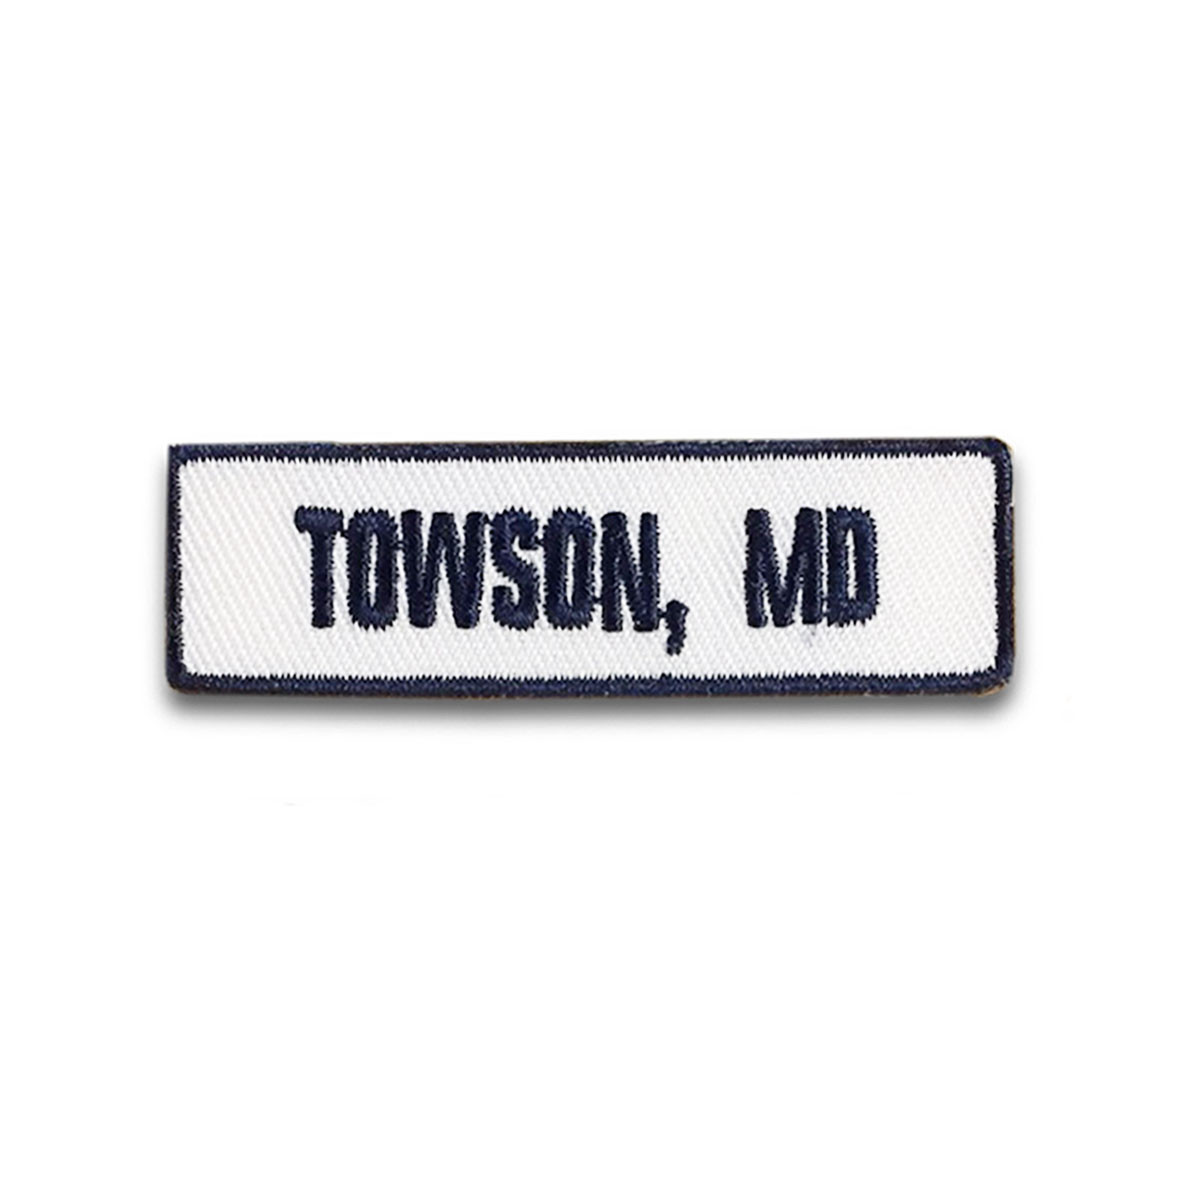 Towson, MD Rocker Patch